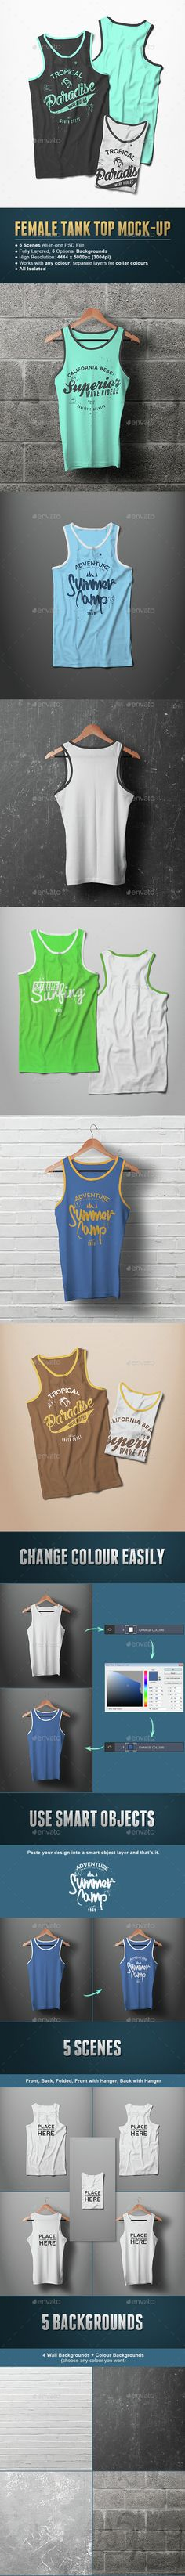 Male Tank Top T-shirt Mock-up. Download here: http://graphicriver.net/item/male-tank-top-tshirt-mockup/15162238?ref=ksioks